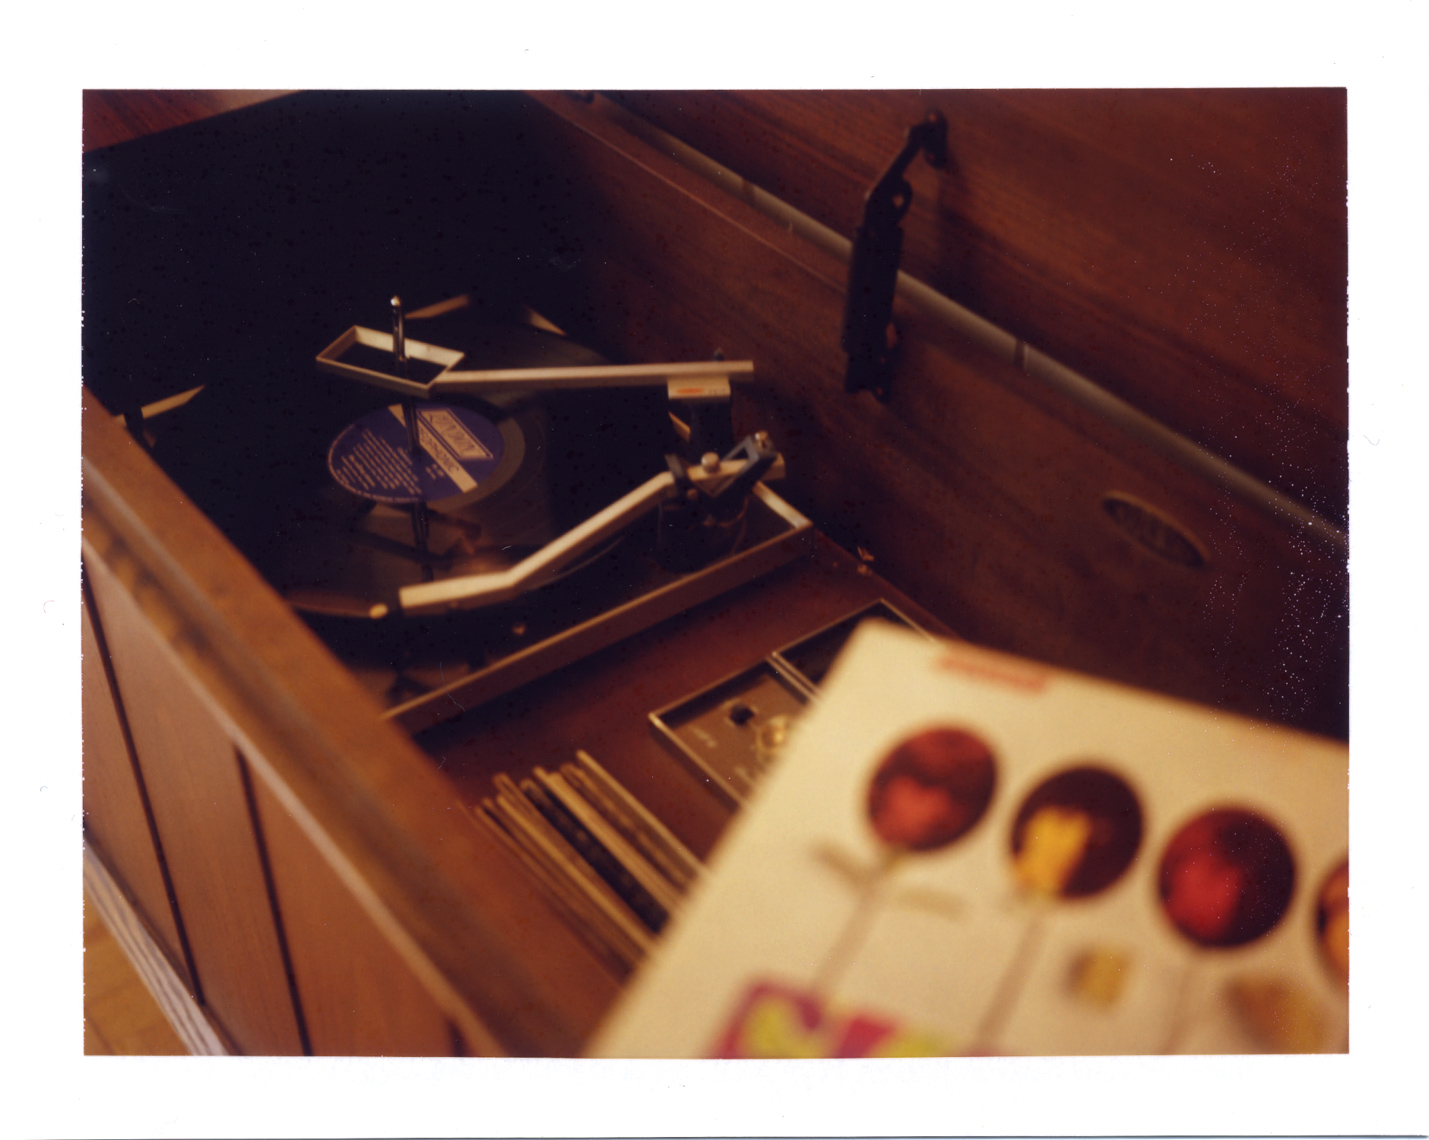 Polaroid of Sears Console and album | Austin Fien Art Photographer